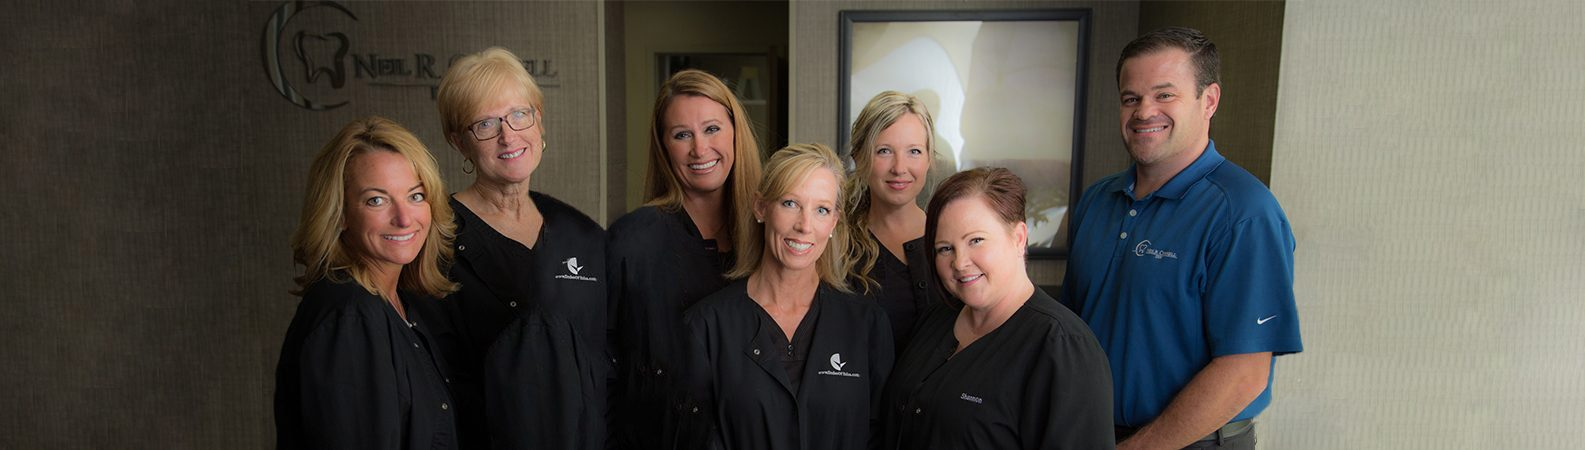 Come Meet The Staff At Our Tulsa, OK Dental Office